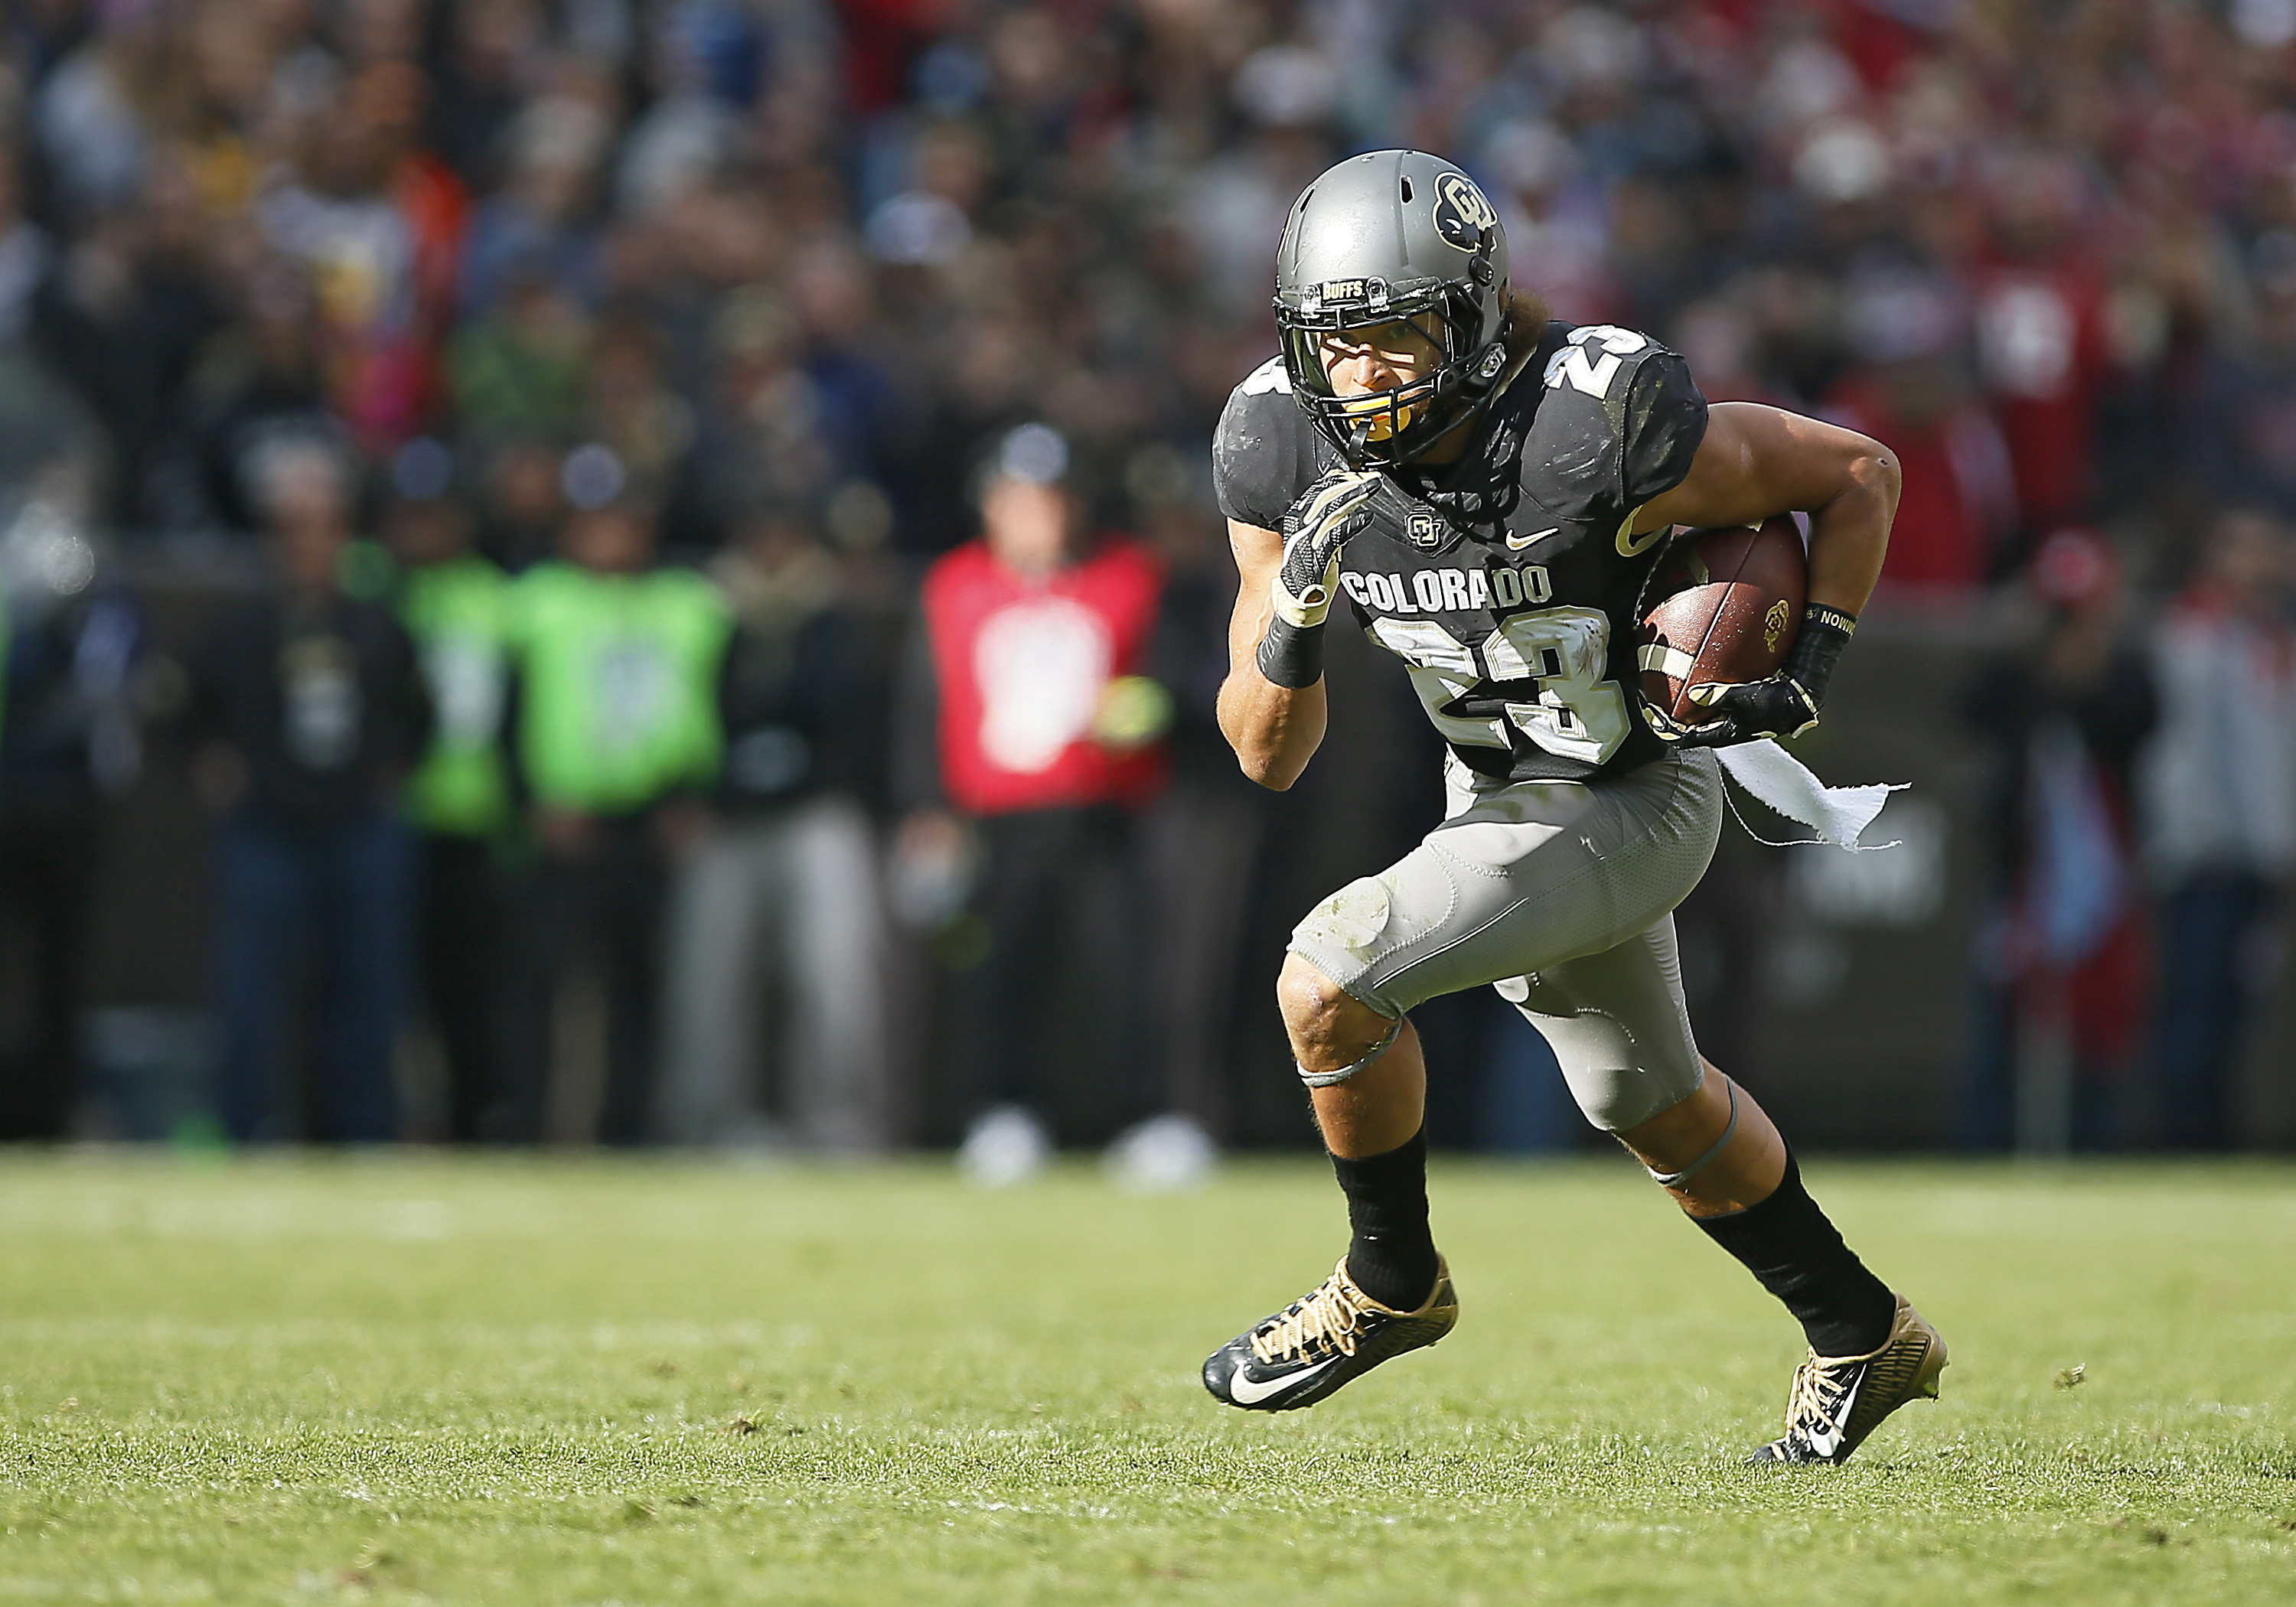 Colorado Buffaloes Tailback, Phillip Lindsay (23) runs the ball during a Pac-12 conference match-up between the Colorado Buffaloes and the visiting Washington State Cougars on November 19, 2016, at Folsom Field in Boulder, CO. (Photo by Russell Lansford/Icon Sportswire via Getty Images)